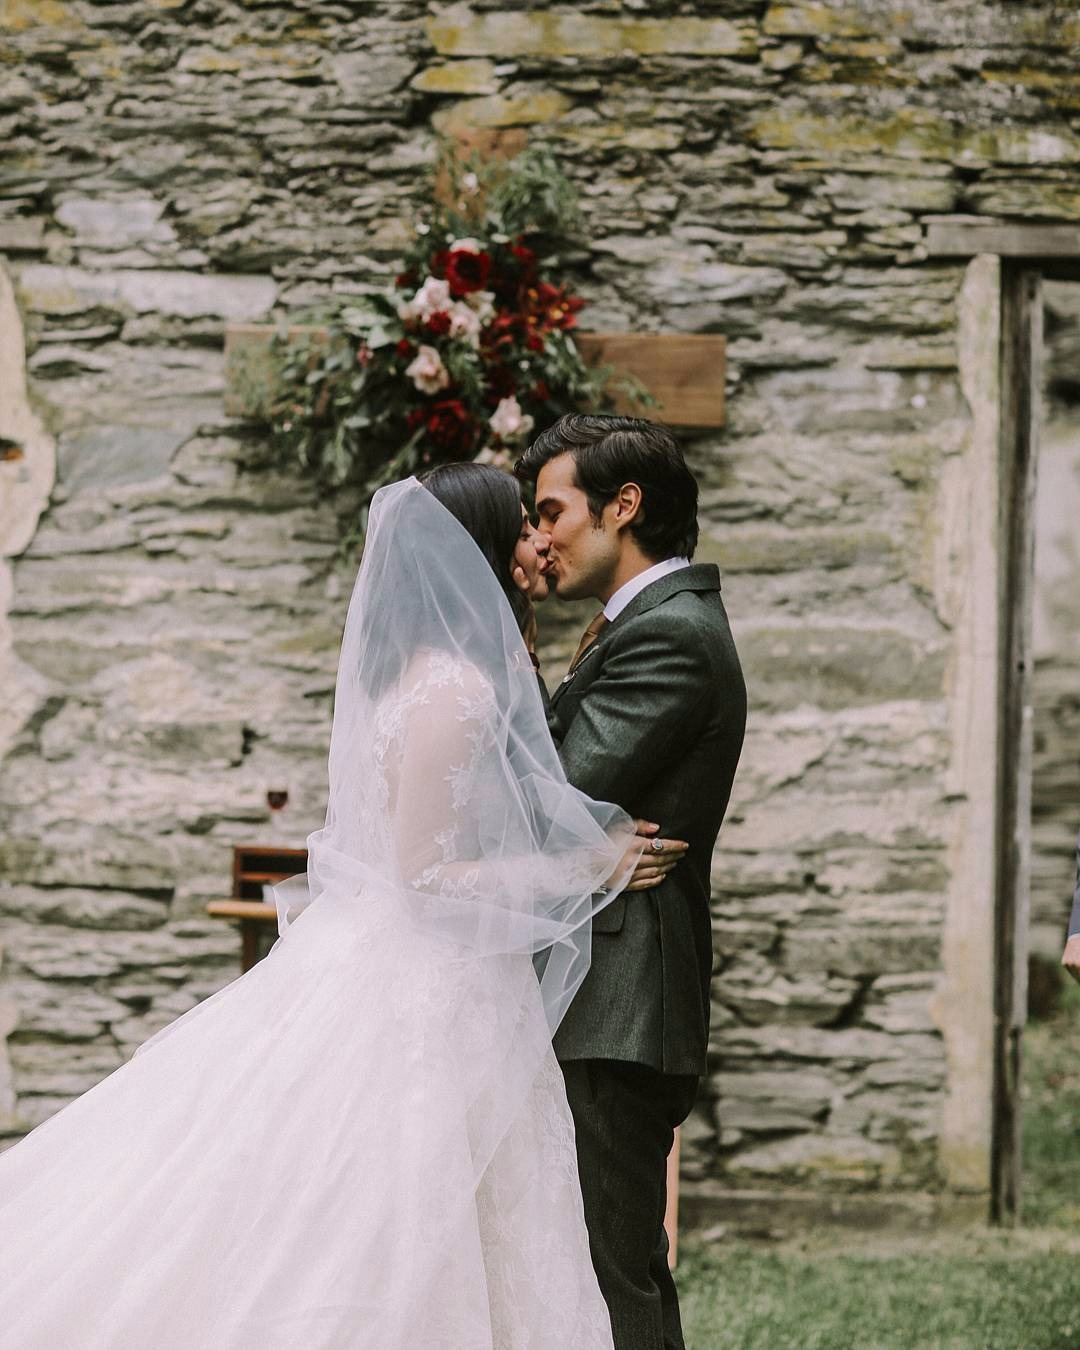 Erwan Heussaff kissing his new wife Anne Curtis on their wedding day